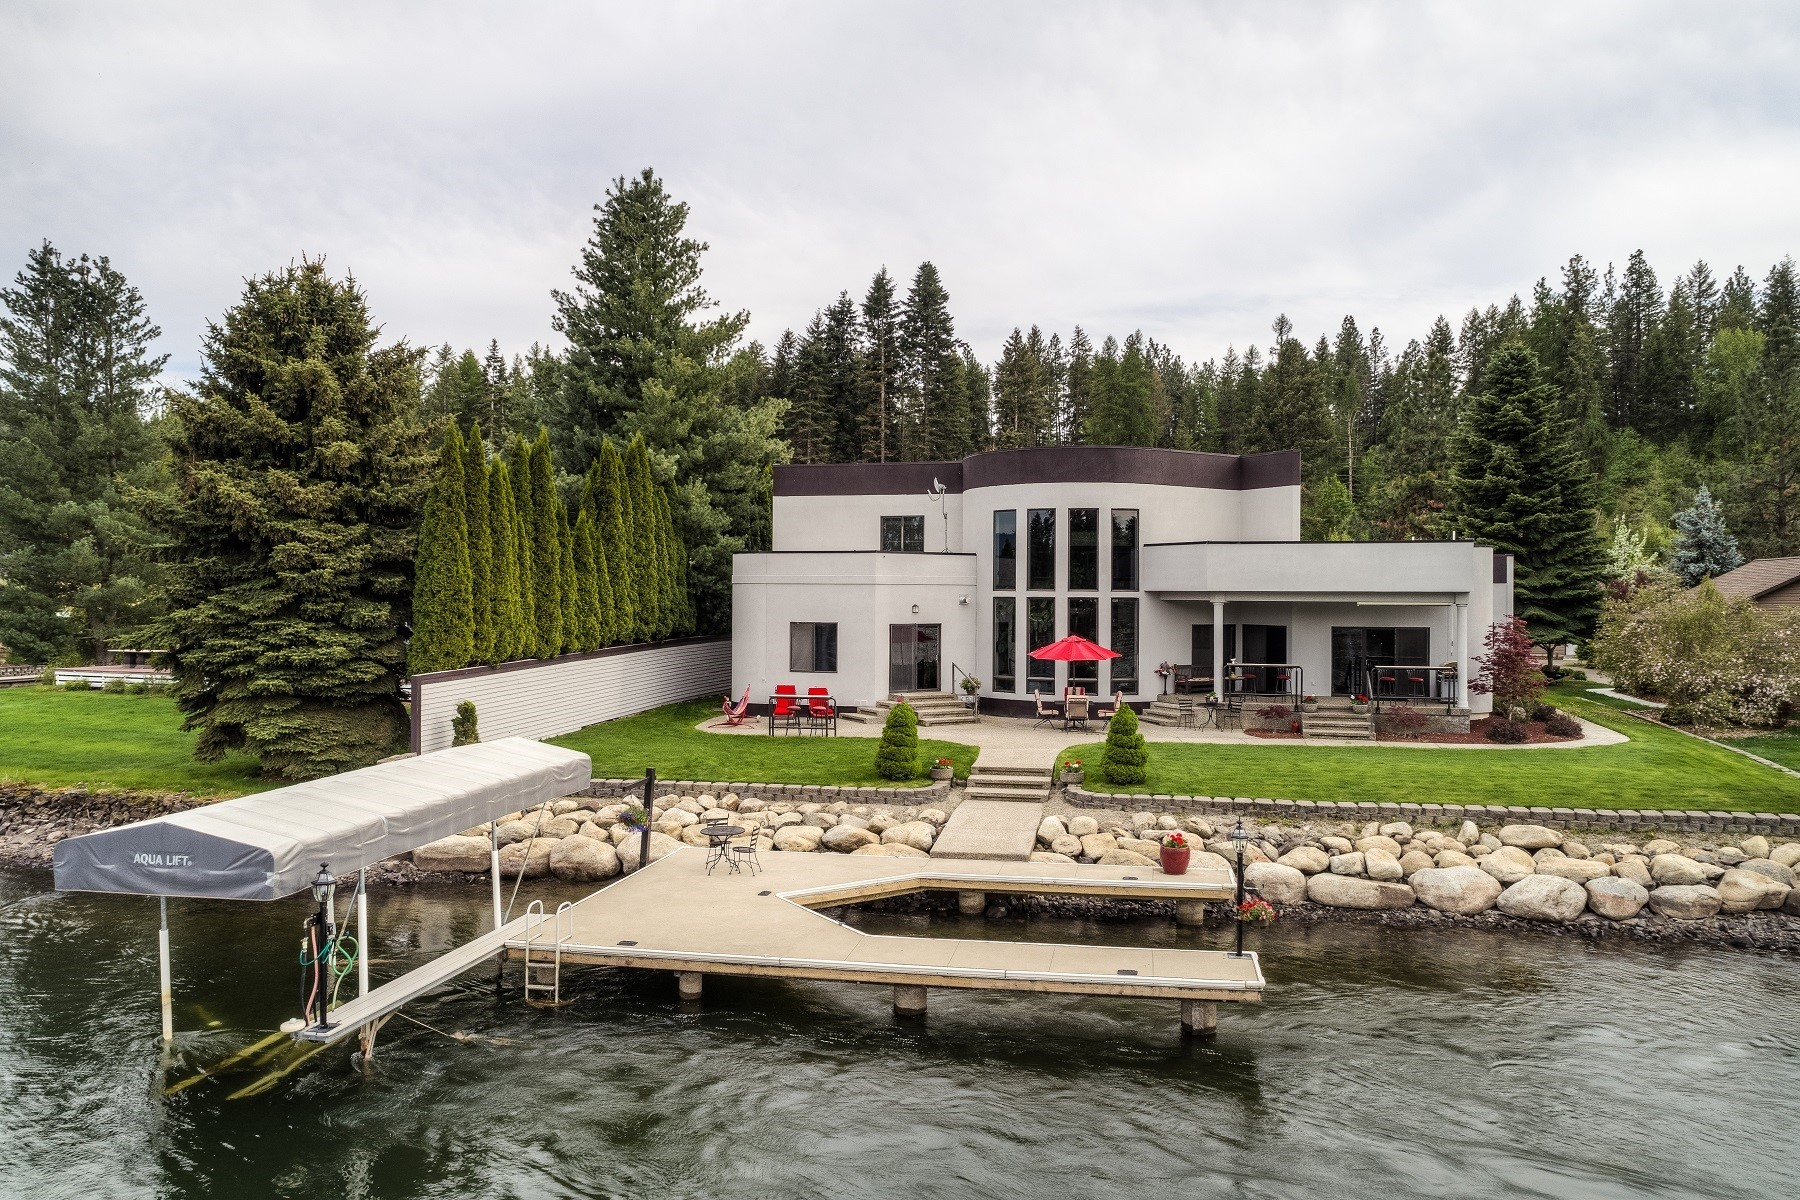 Single Family Homes for Active at Hidden Island's Treasure 440 S Hidden Island Lane Coeur D Alene, Idaho 83814 United States